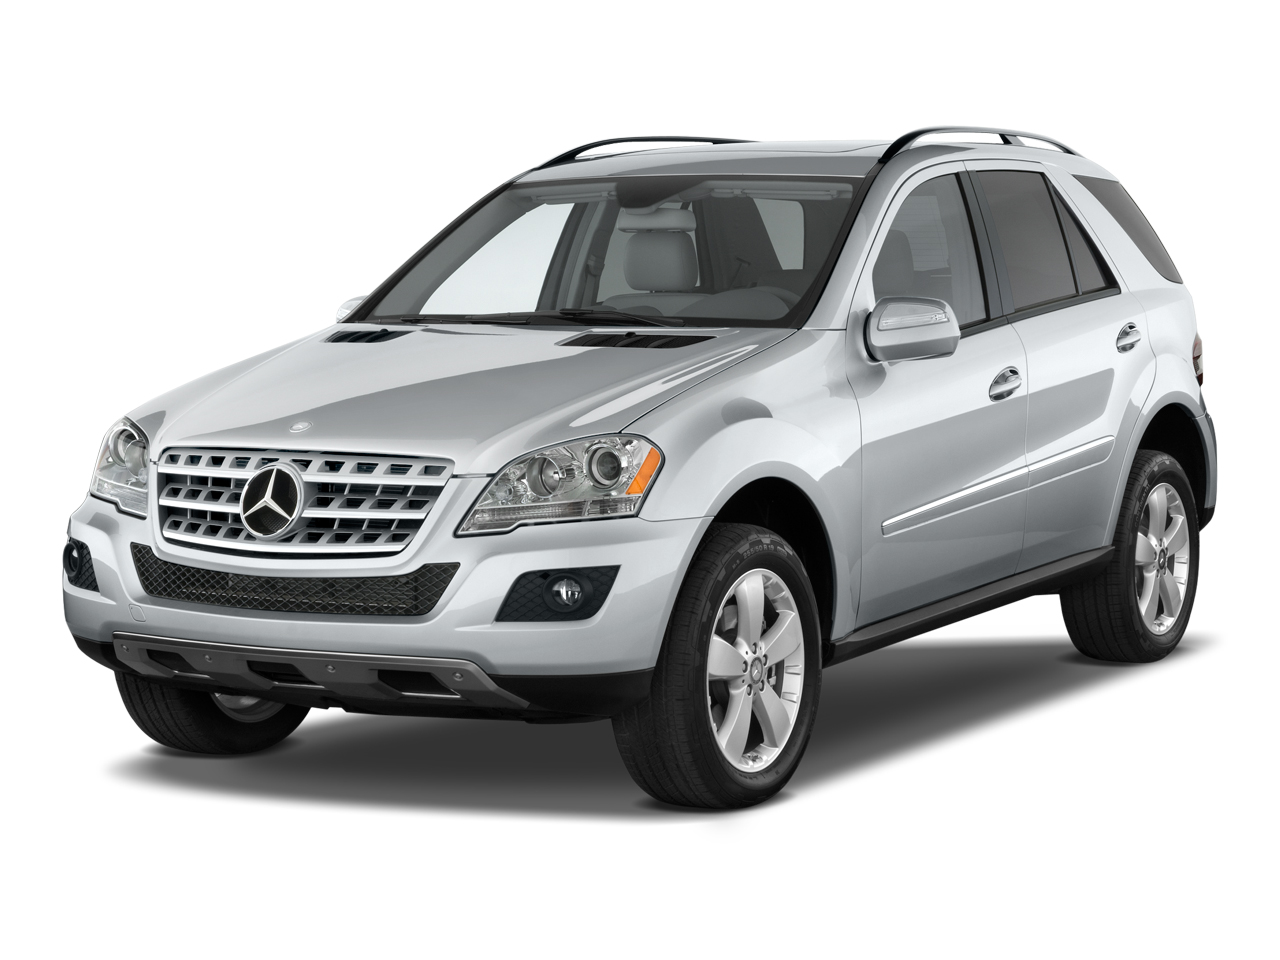 2010 mercedes benz m class review ratings specs prices for 2008 mercedes benz ml350 problems